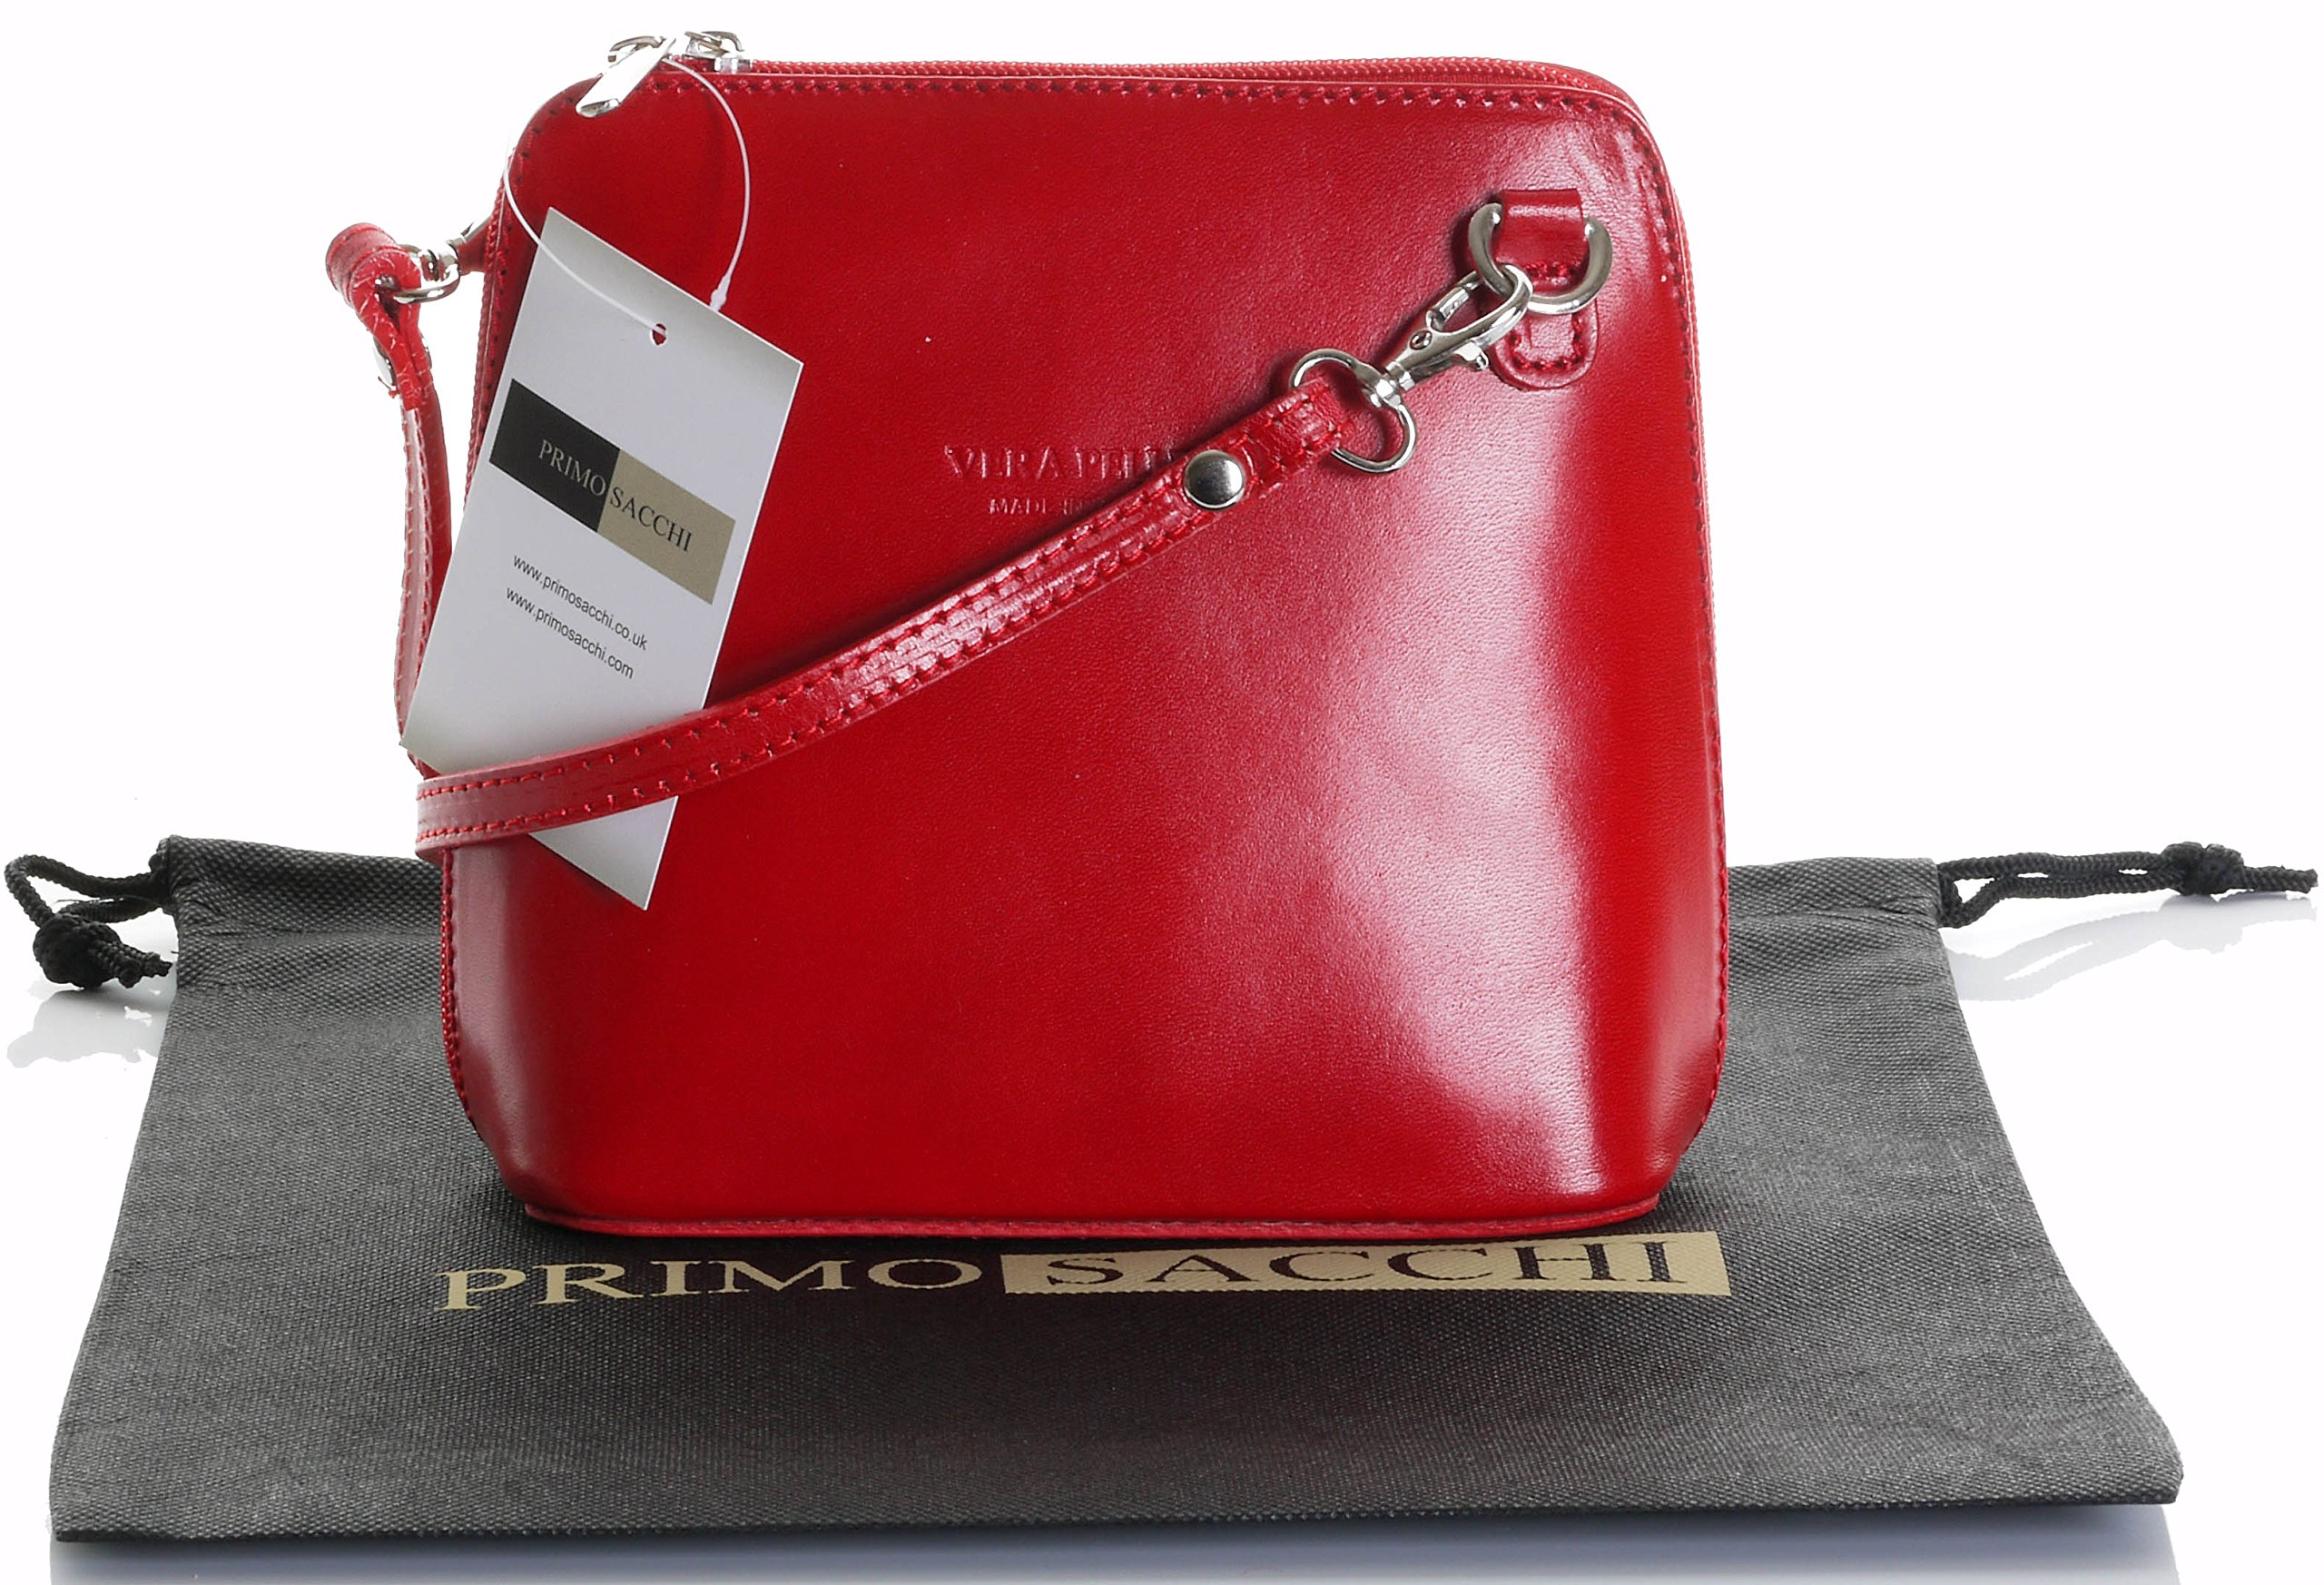 Italian Leather, Red Small/Micro Cross Body Bag or Shoulder Bag Handbag. Includes Branded a Protective Storage Bag.